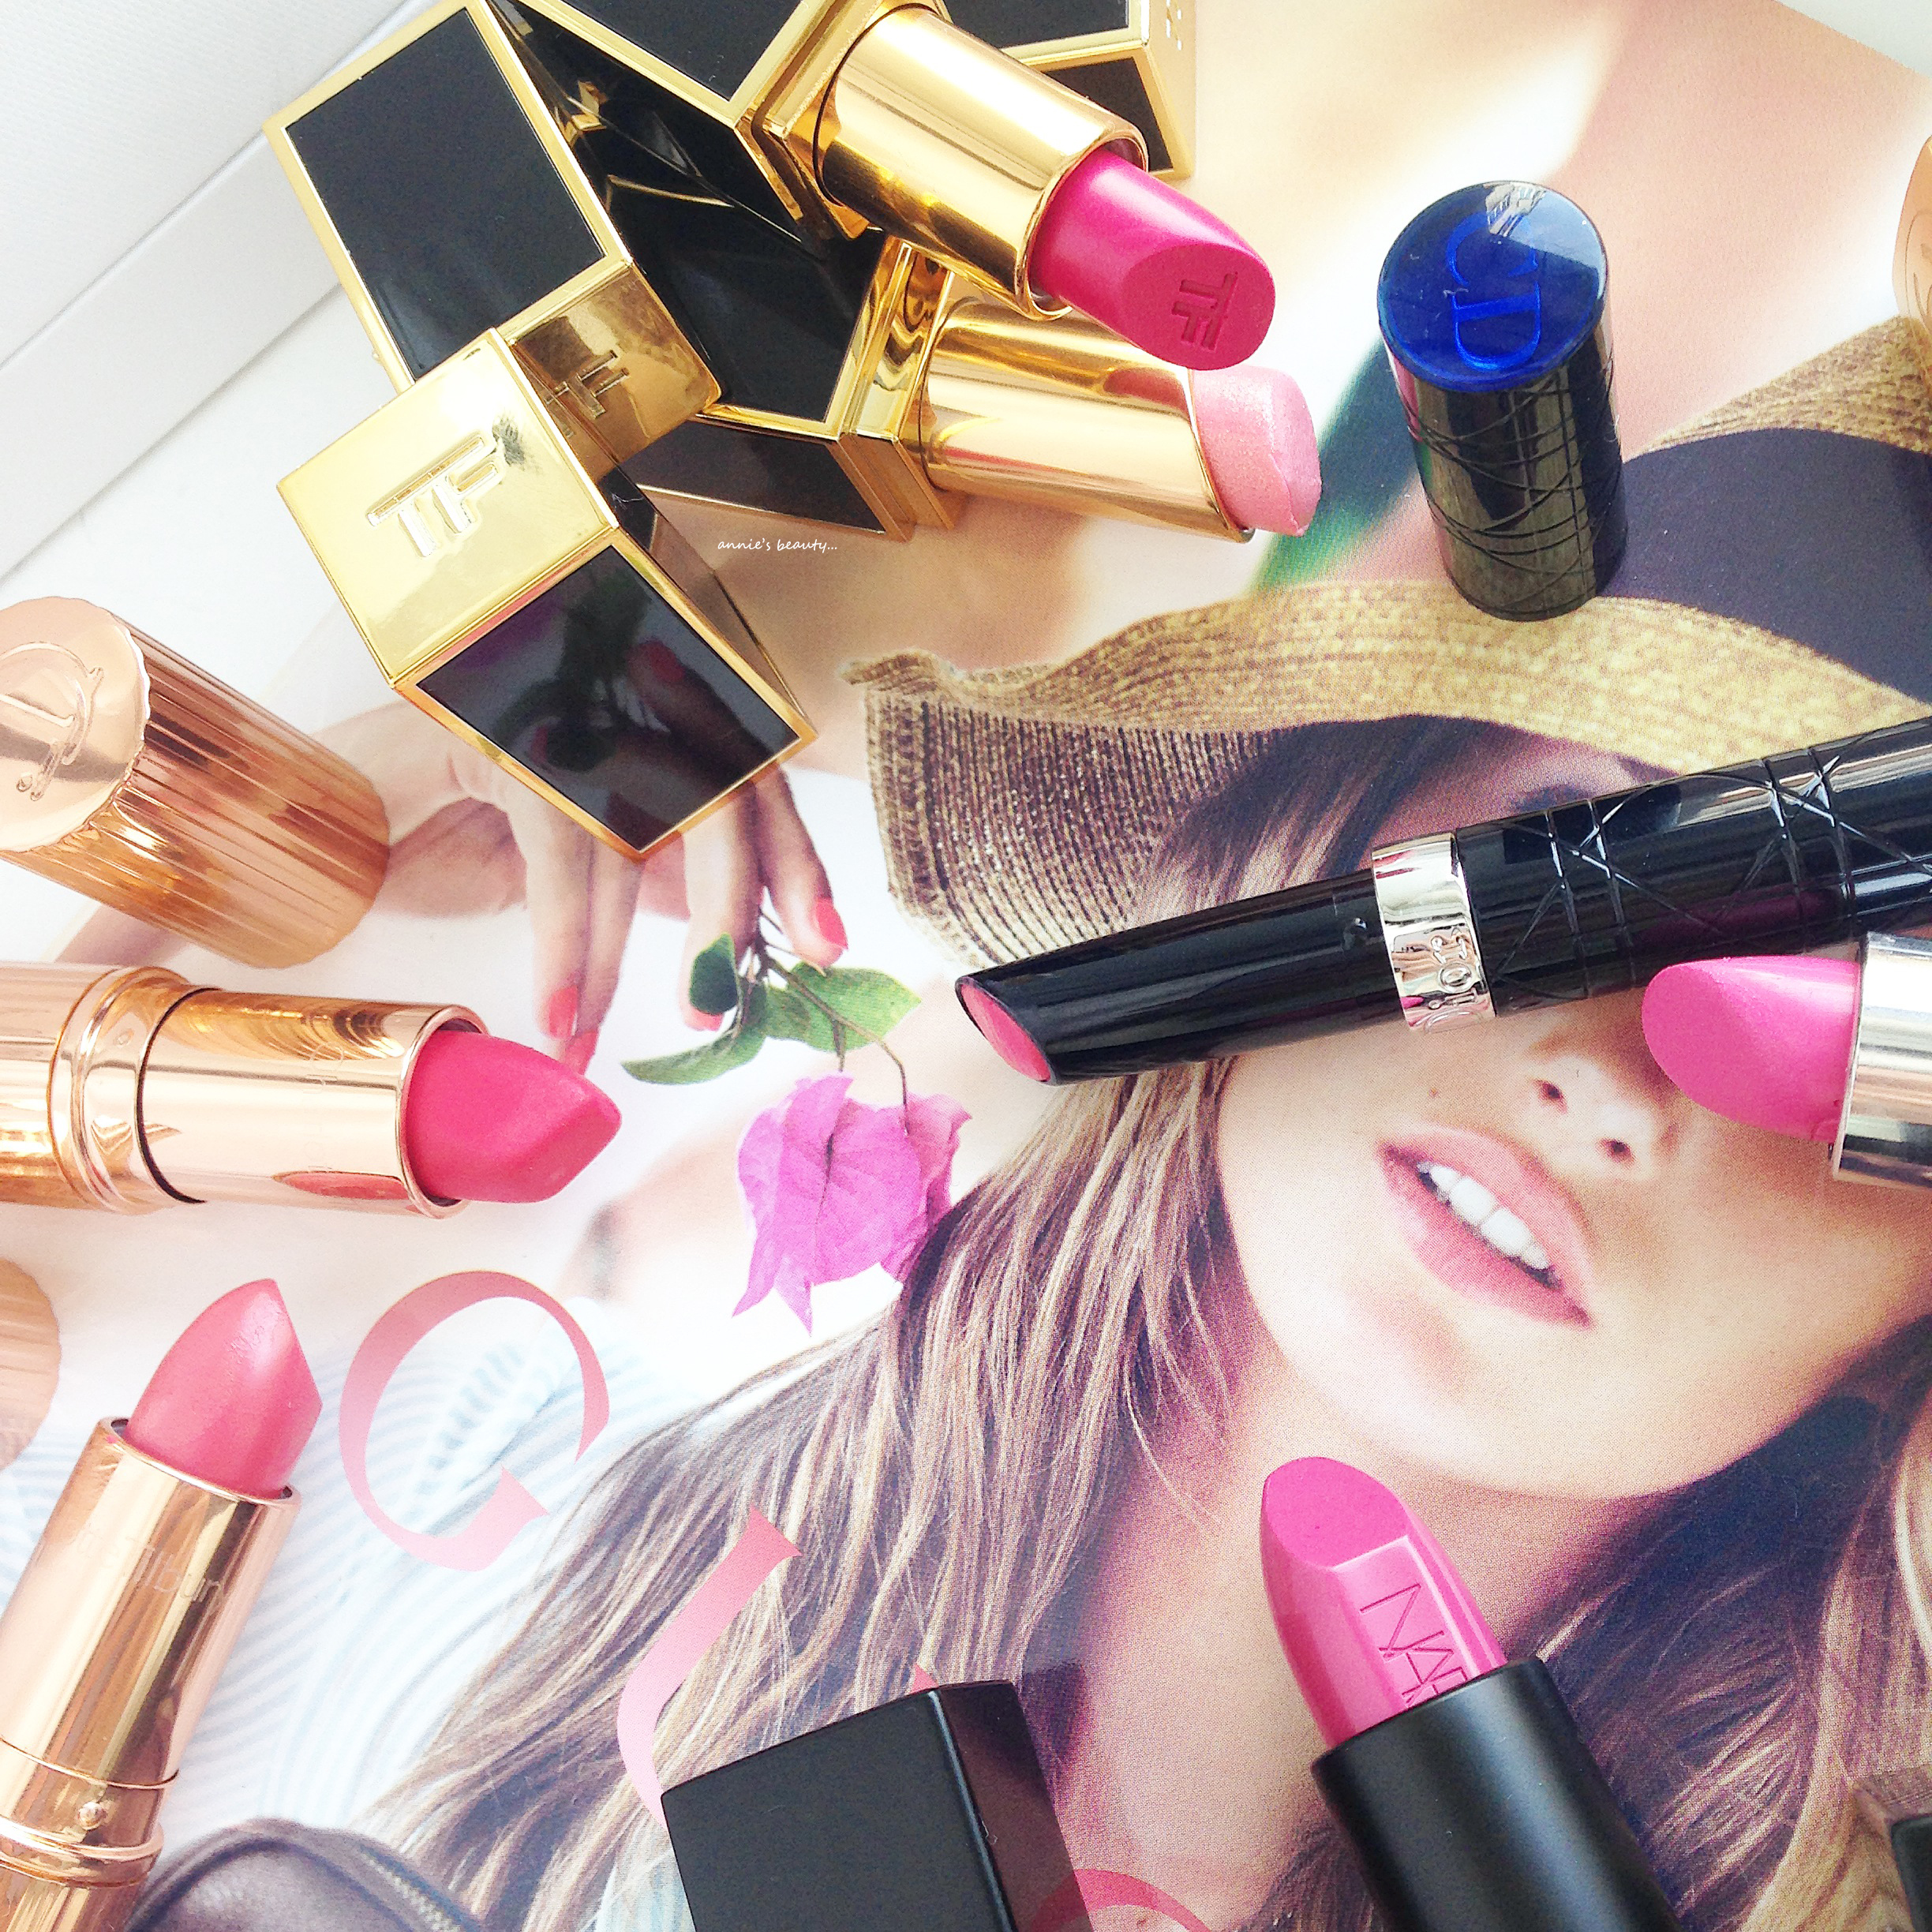 The Lipstick Tag 2.0… a.k.a. The Confessions of a Lipstick